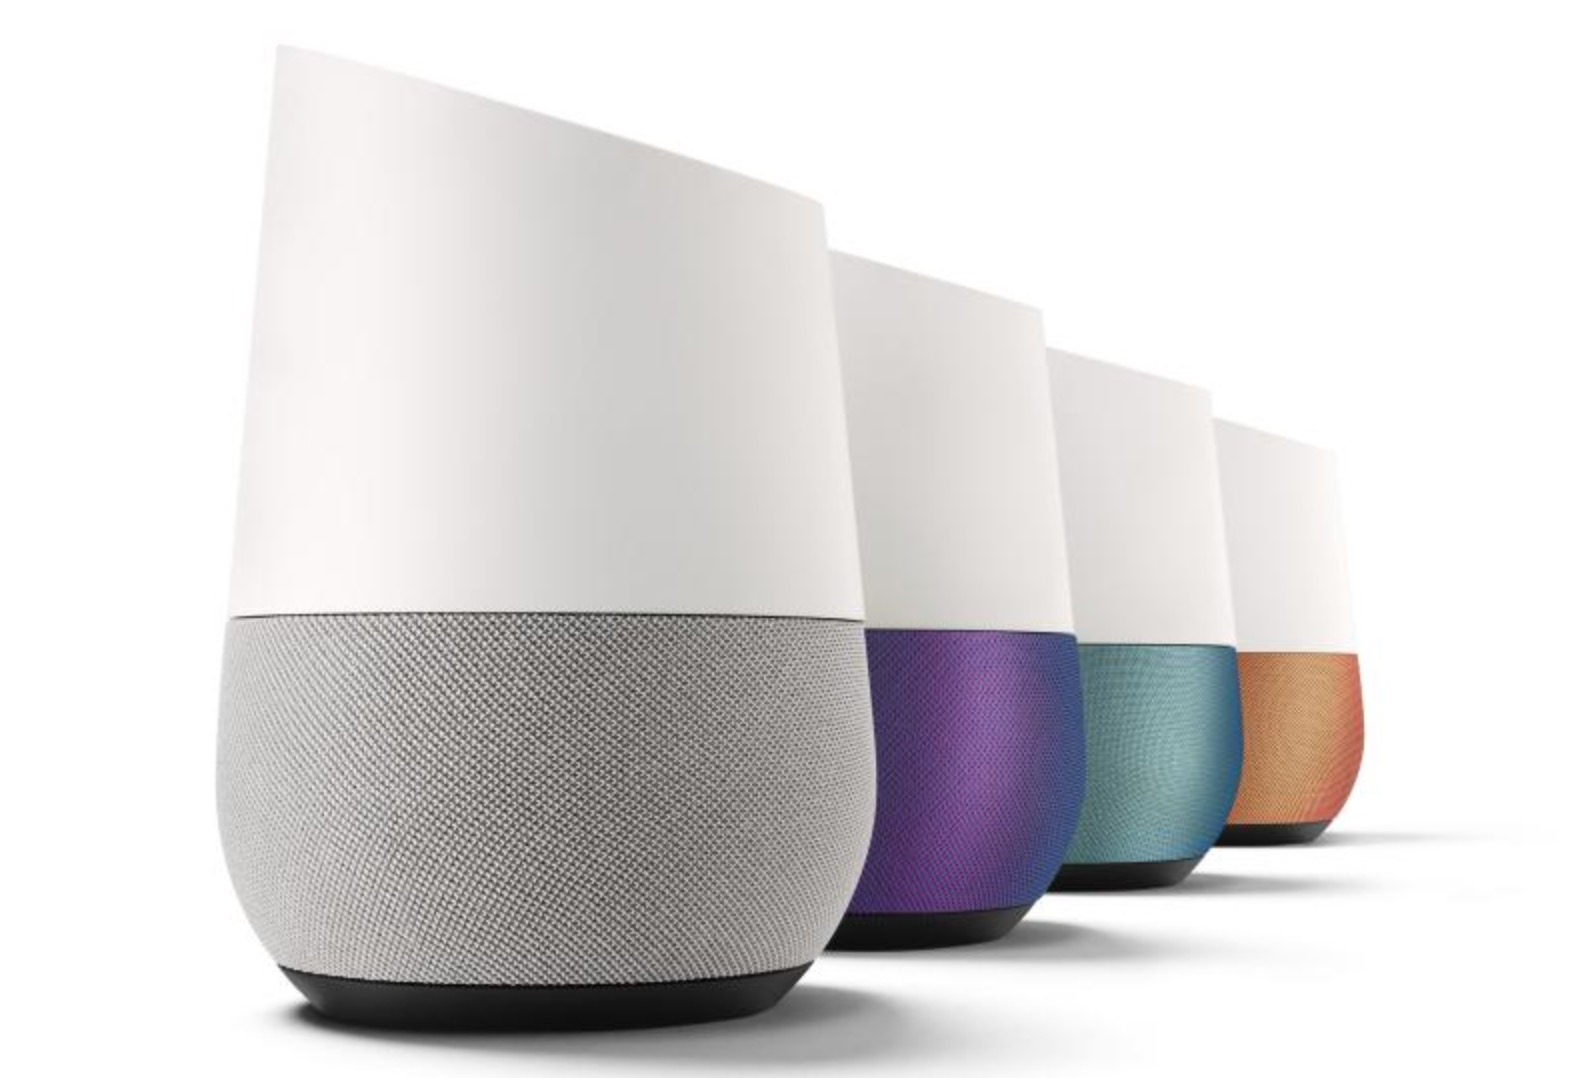 Set location-based reminders with your voice on Google Home